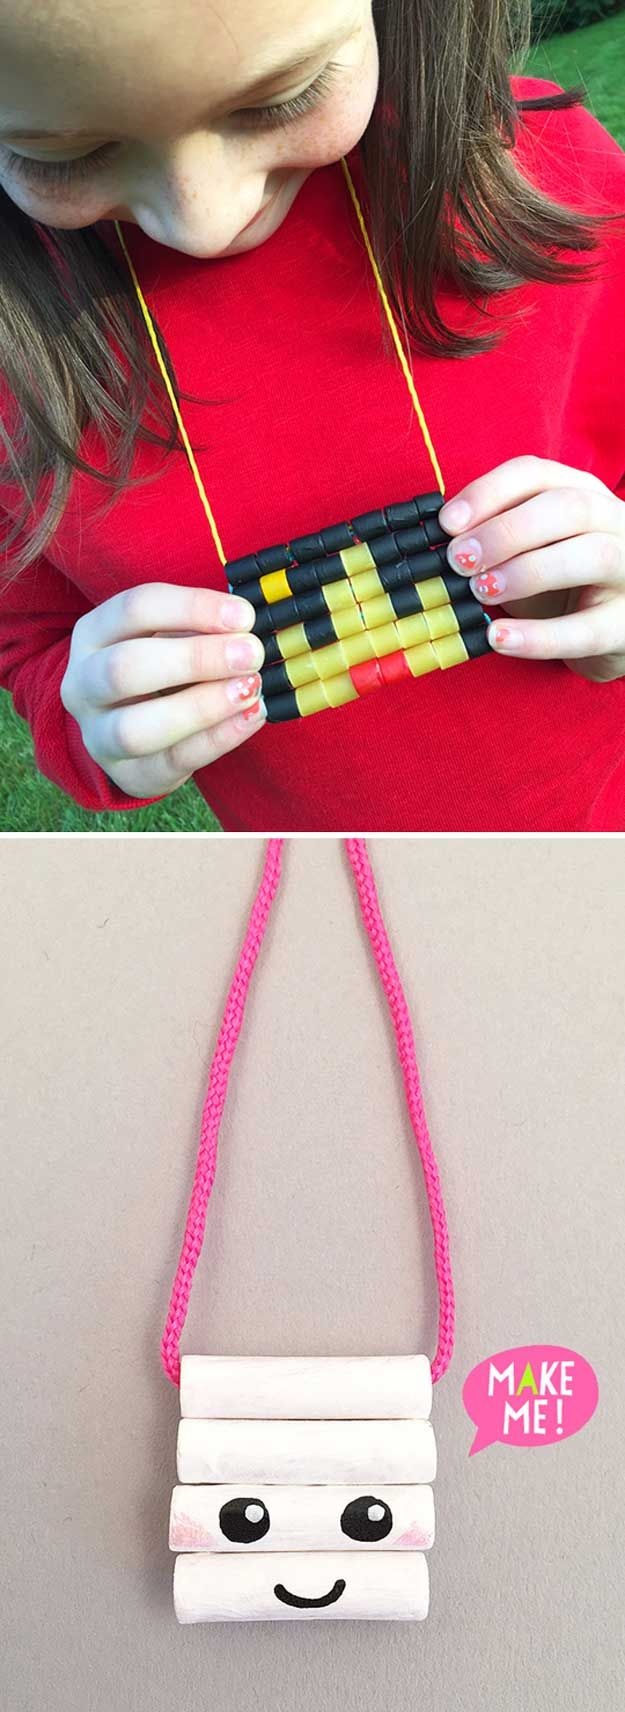 340 Best DIY Projects For Girls Images On Pinterest